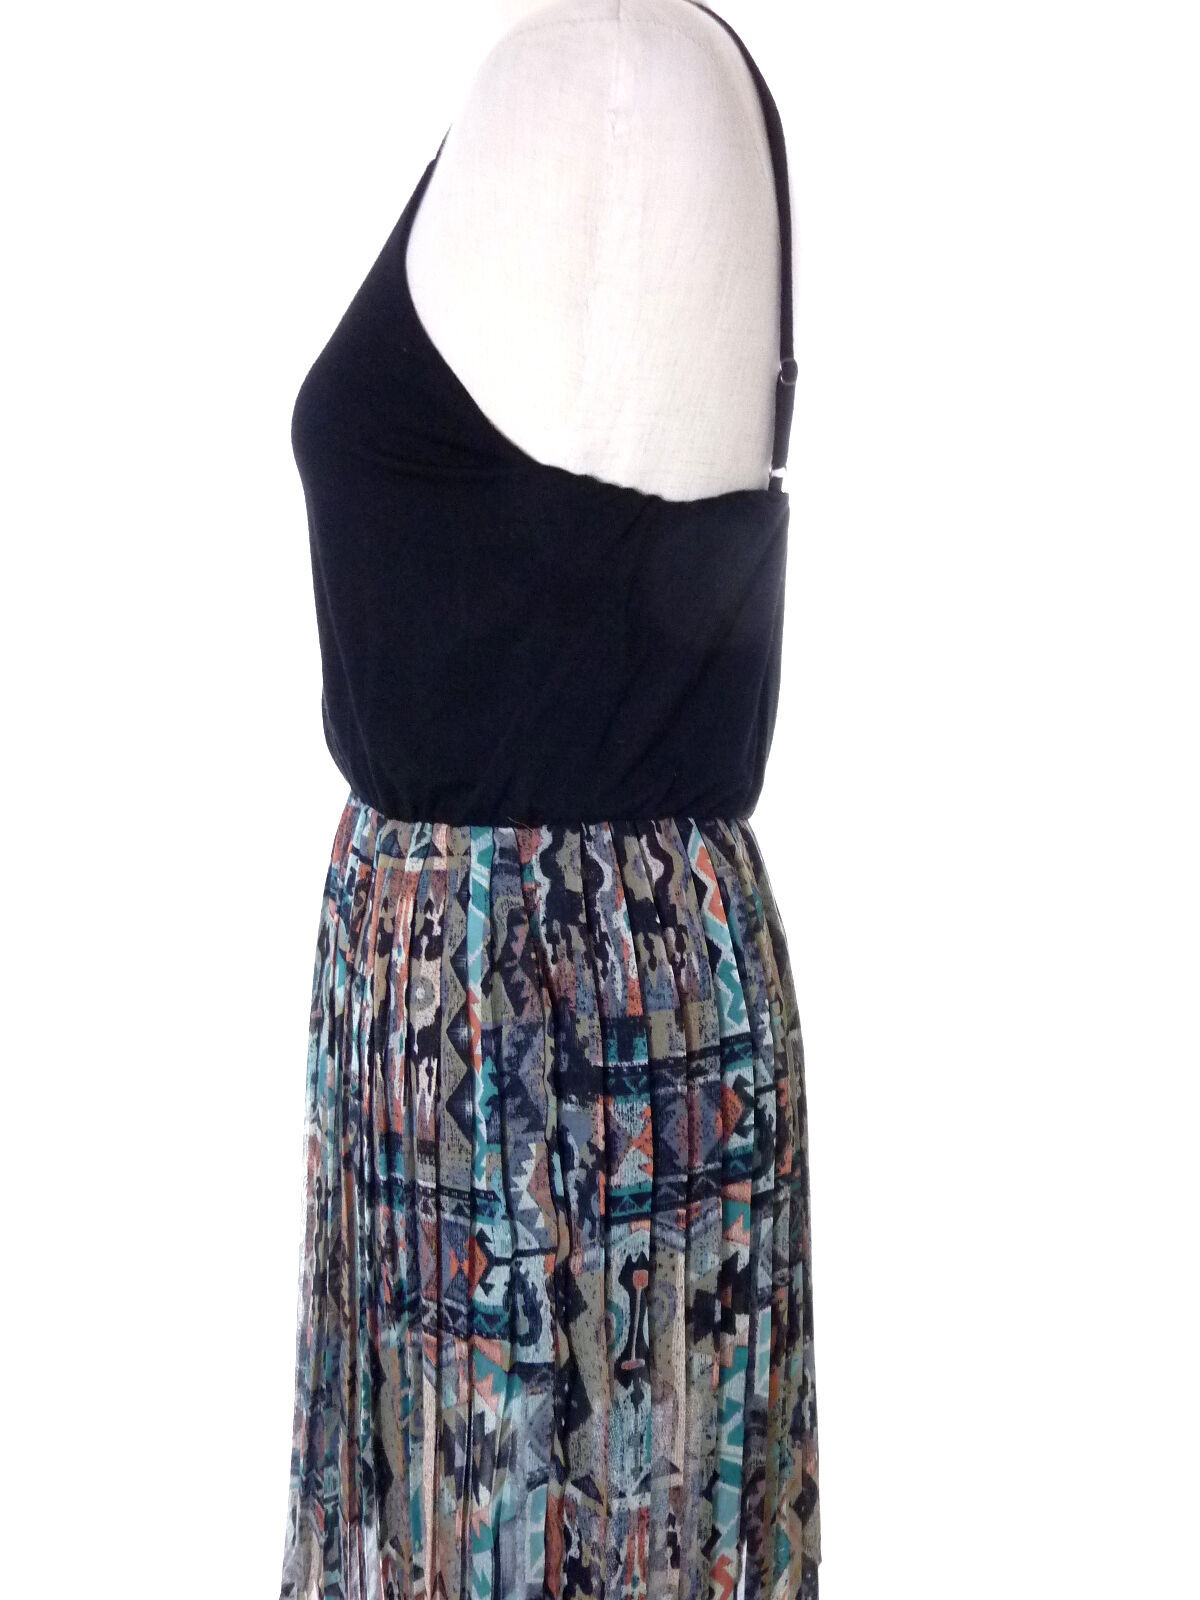 Black and Aztec Print Chiffon Skirting Dress Lush Medium M